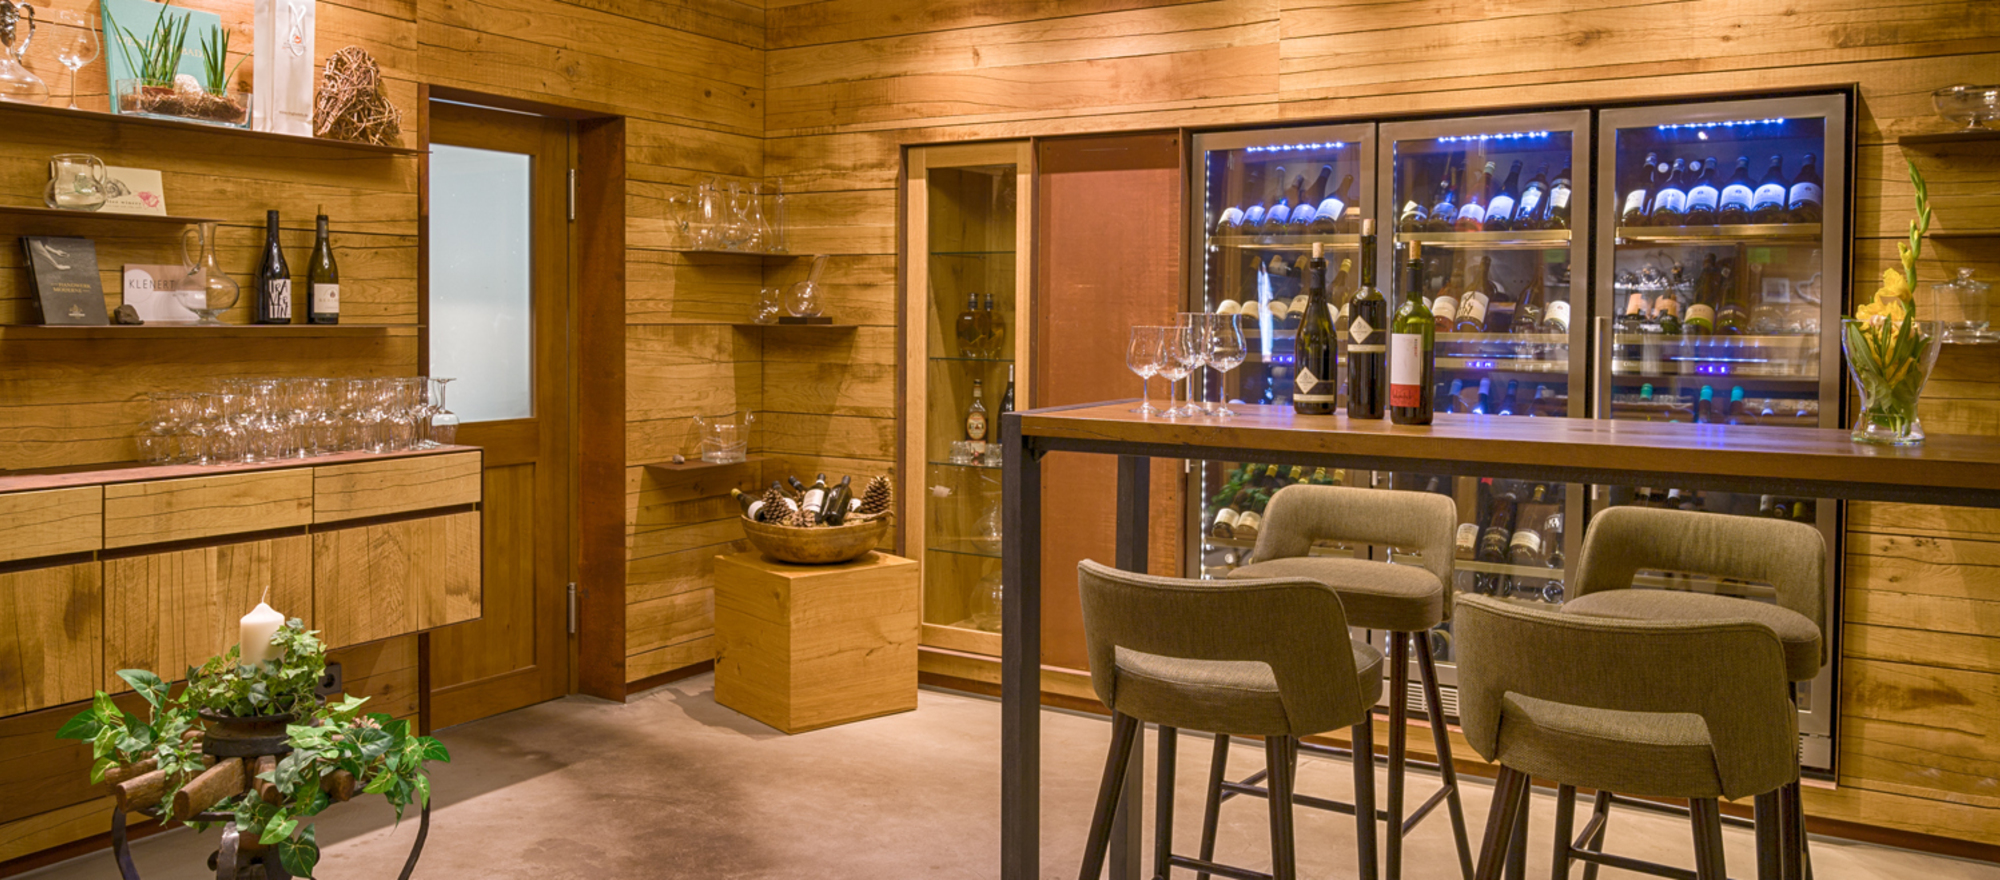 Enjoy excellent wines produced by local winegrowers at the Ringhotel Moenchs Waldhotel, 4-star hotel  in Unterreichenbach